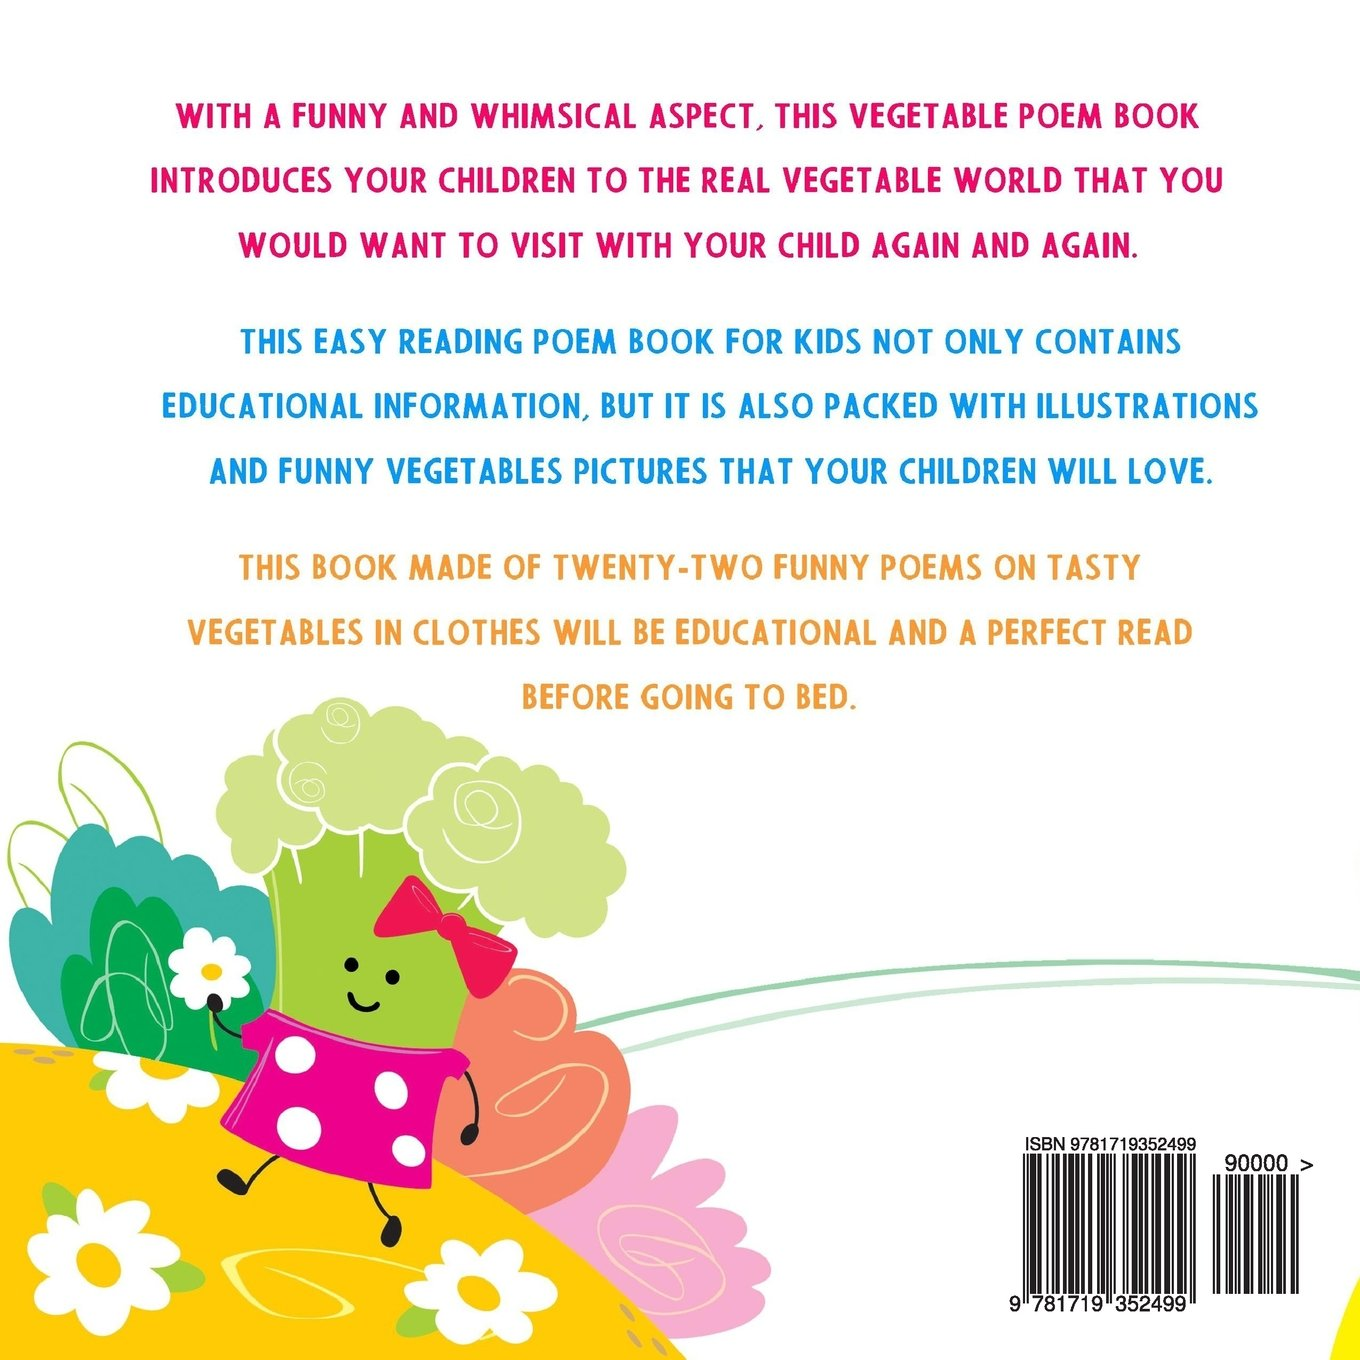 Image of: Esl Amazoncom Cute Vegetables In Clothes Funny Poems For Kids volume 1 9781719352499 Lyana May Books Amazoncom Cute Vegetables In Clothes Funny Poems For Kids volume